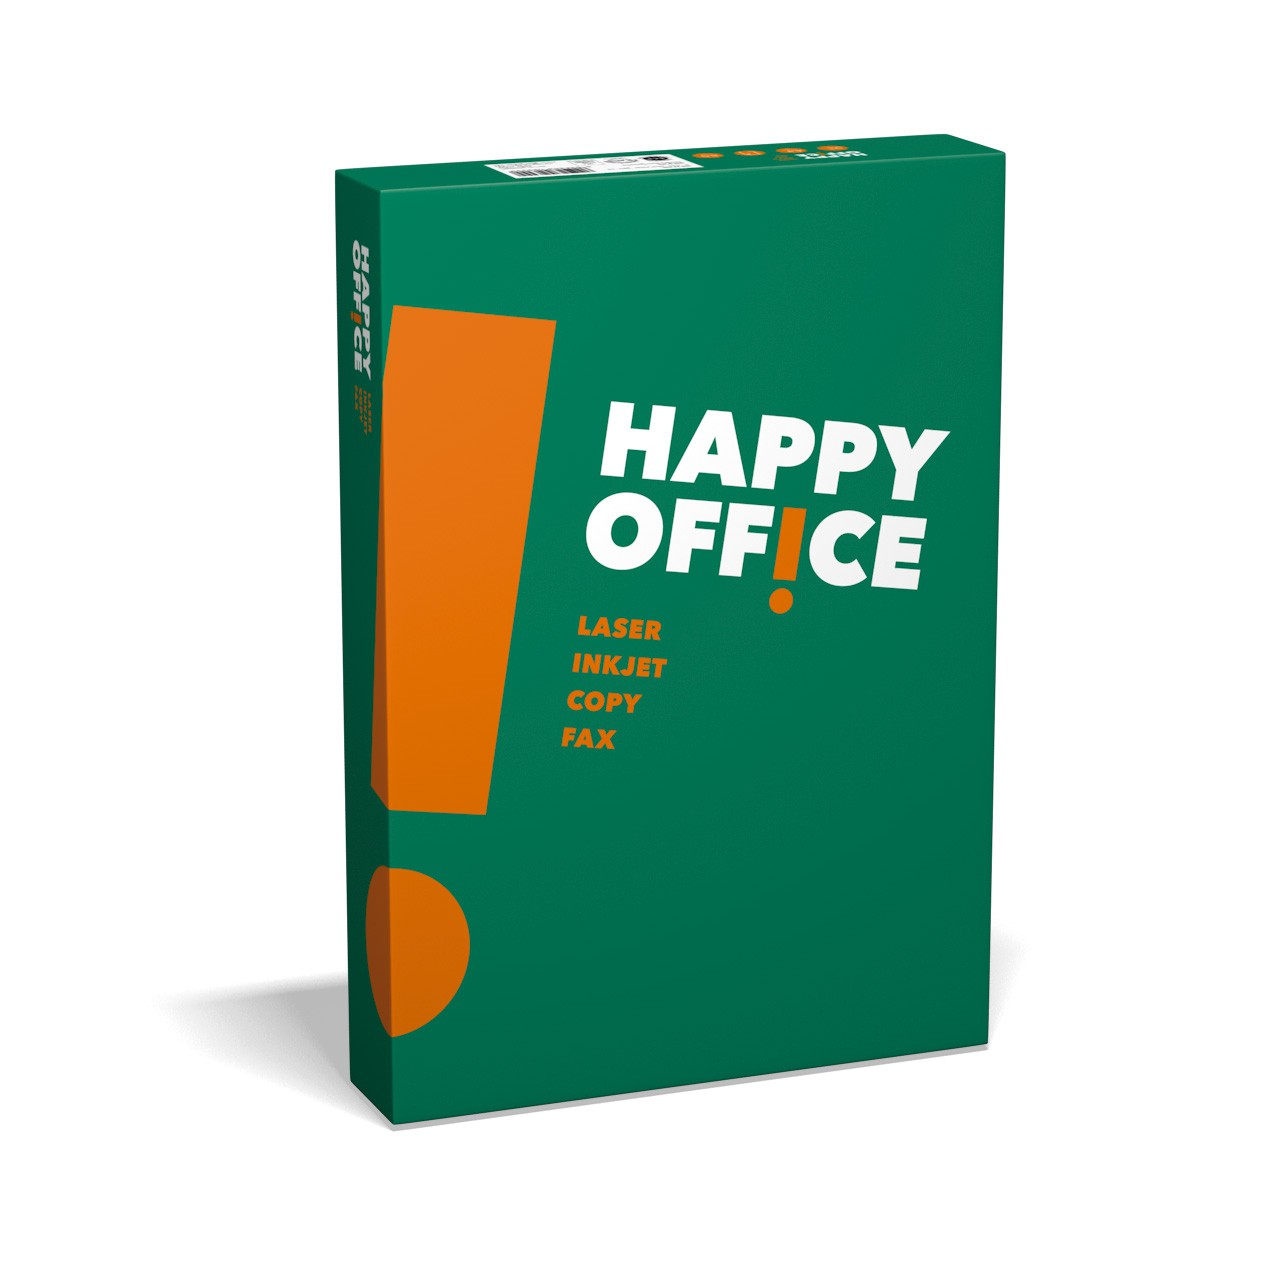 100.000 Blatt Happy Office Kopierpapier 80g/m² DIN-A4 weiß